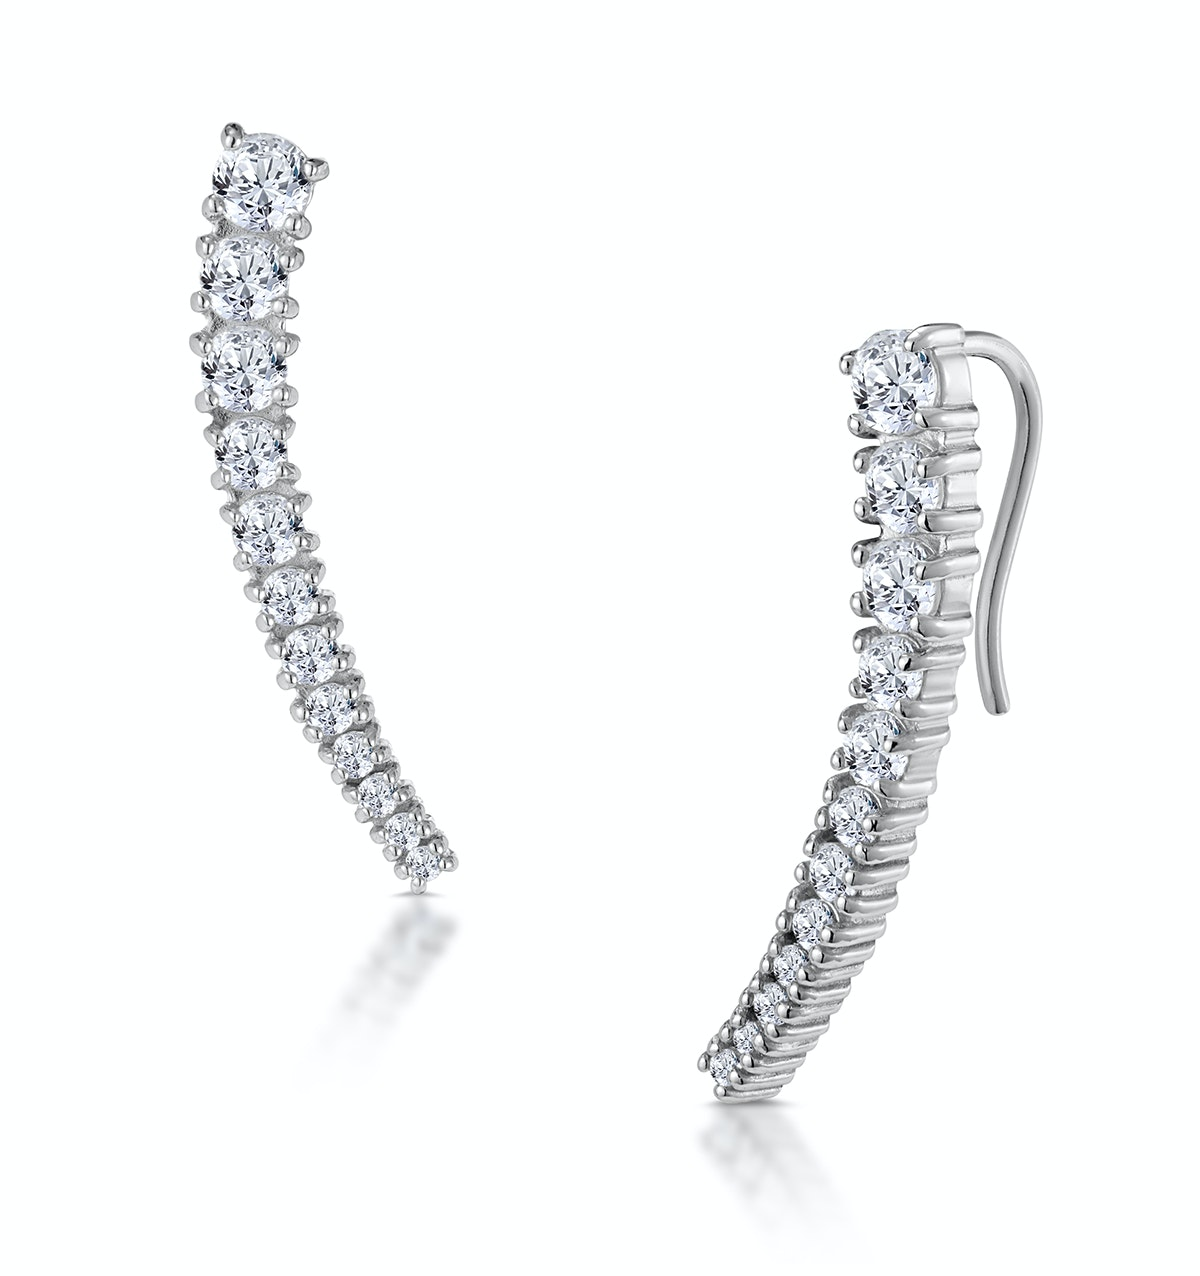 Curved Ear Climber with White Topaz in 925 Silver